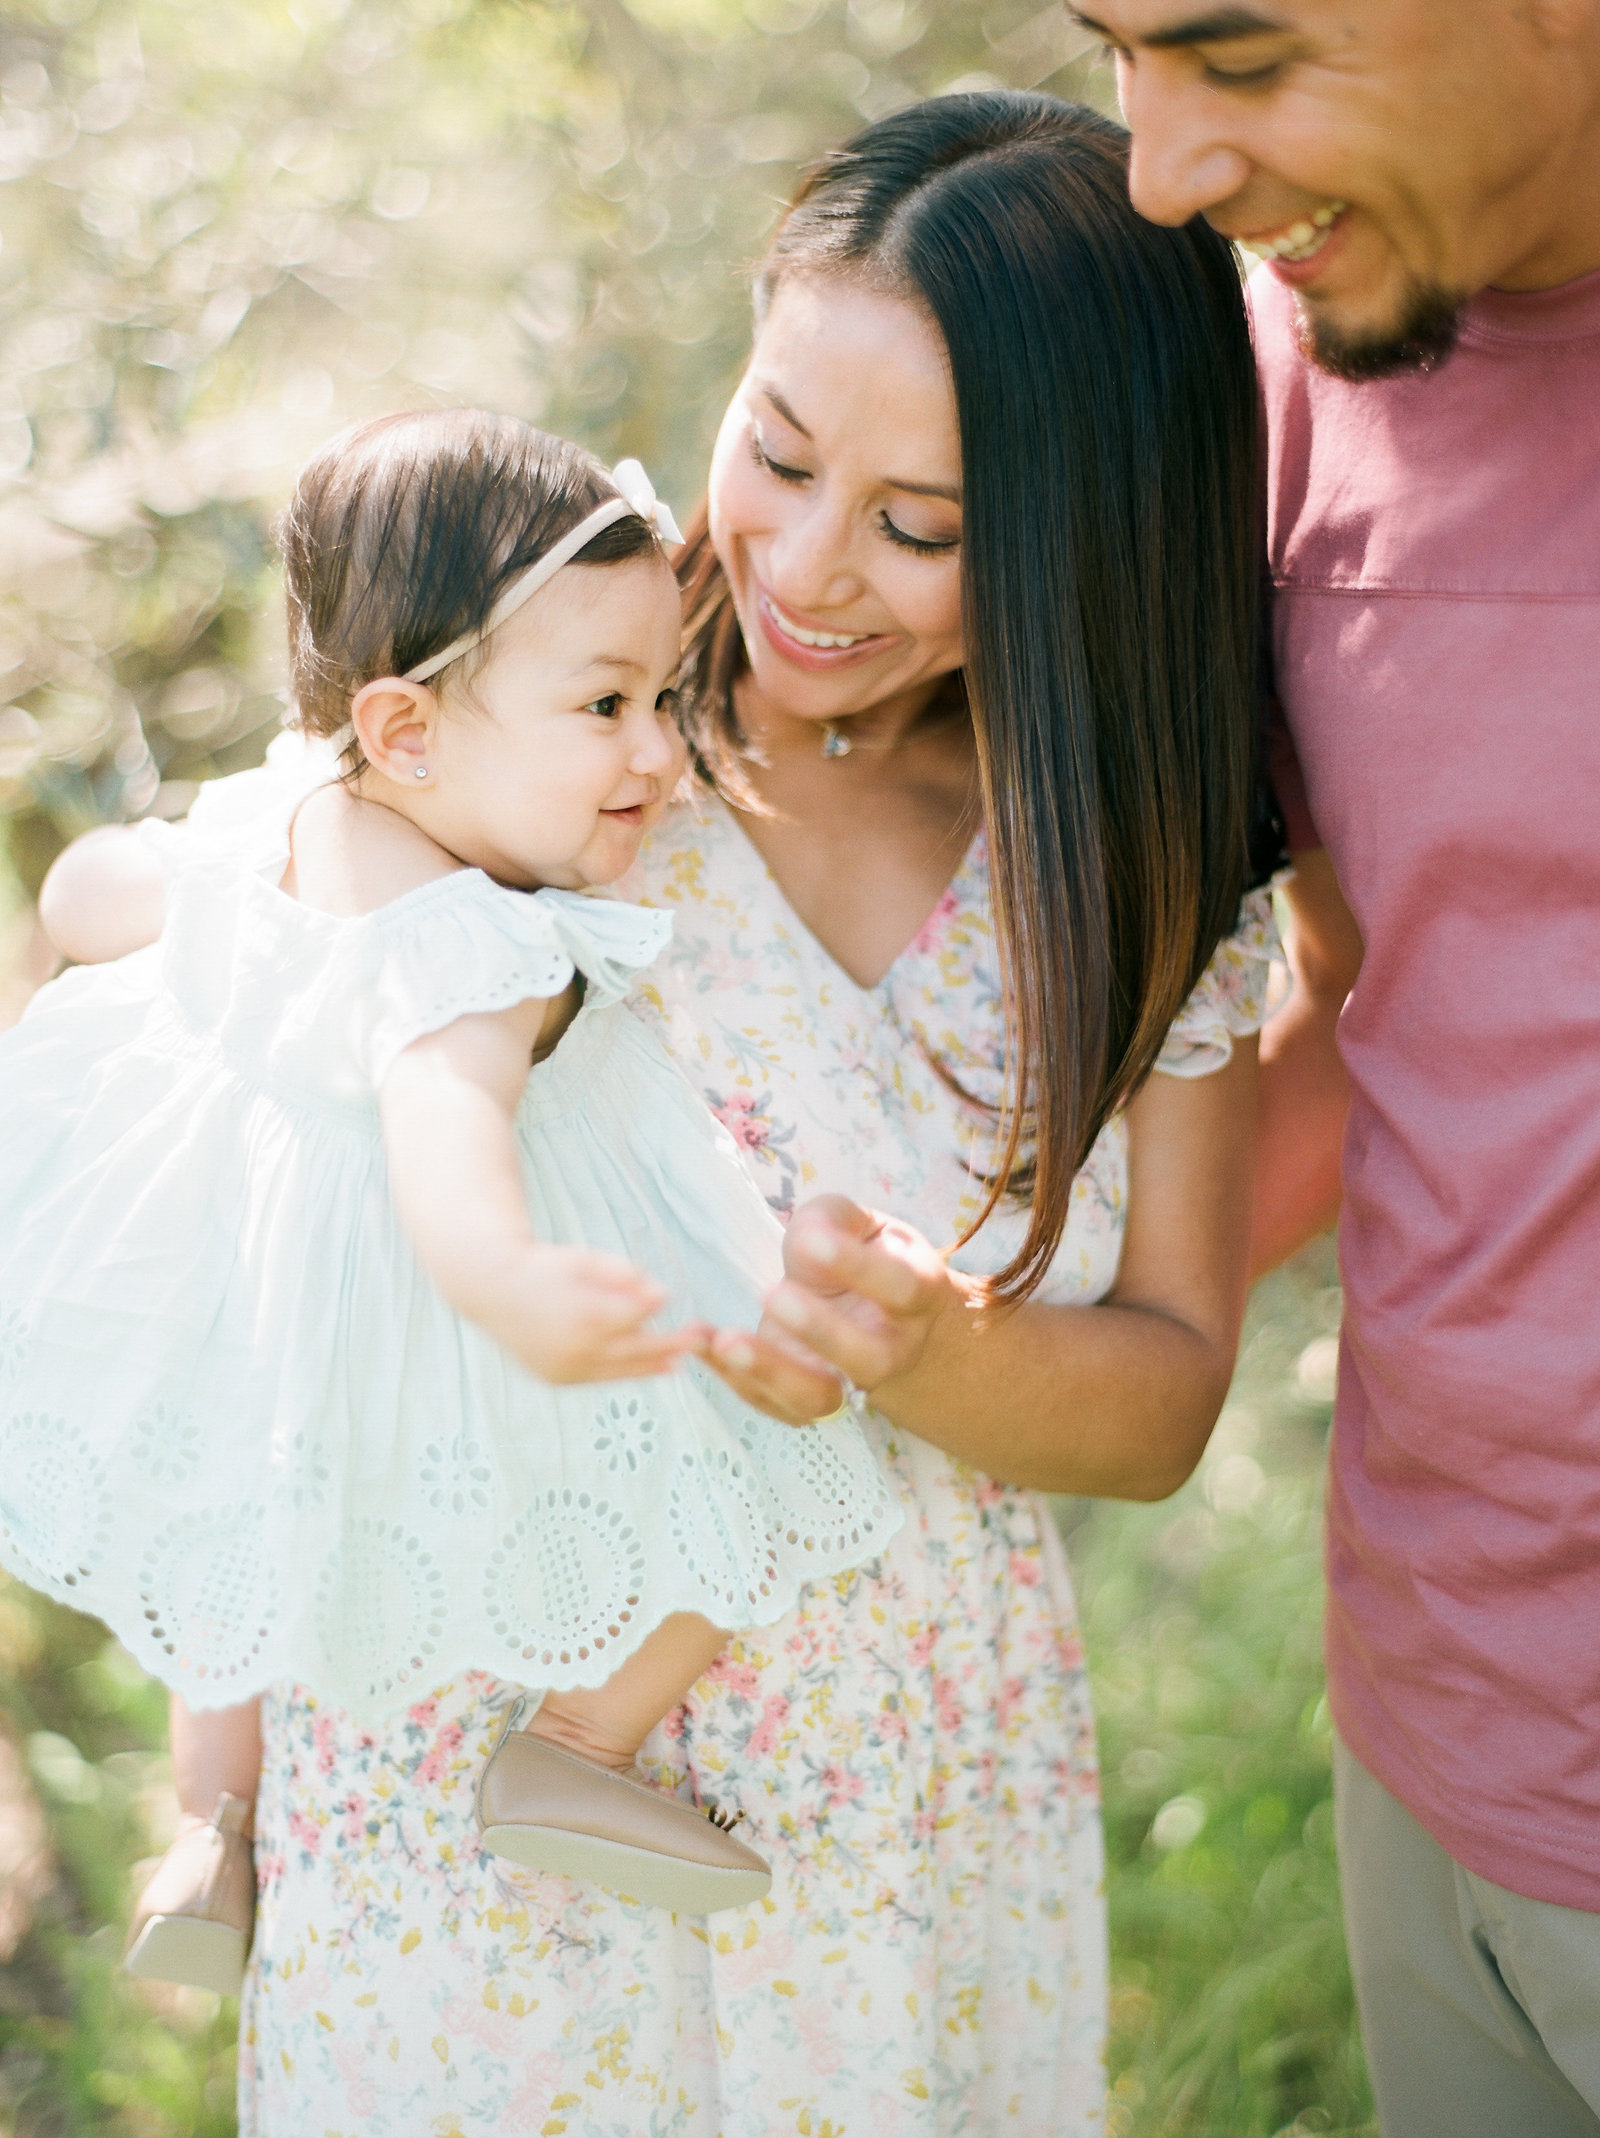 natalie bray studios, portait photographer, san diego family photographer, la jolla photographer, maternity photographer -1-2